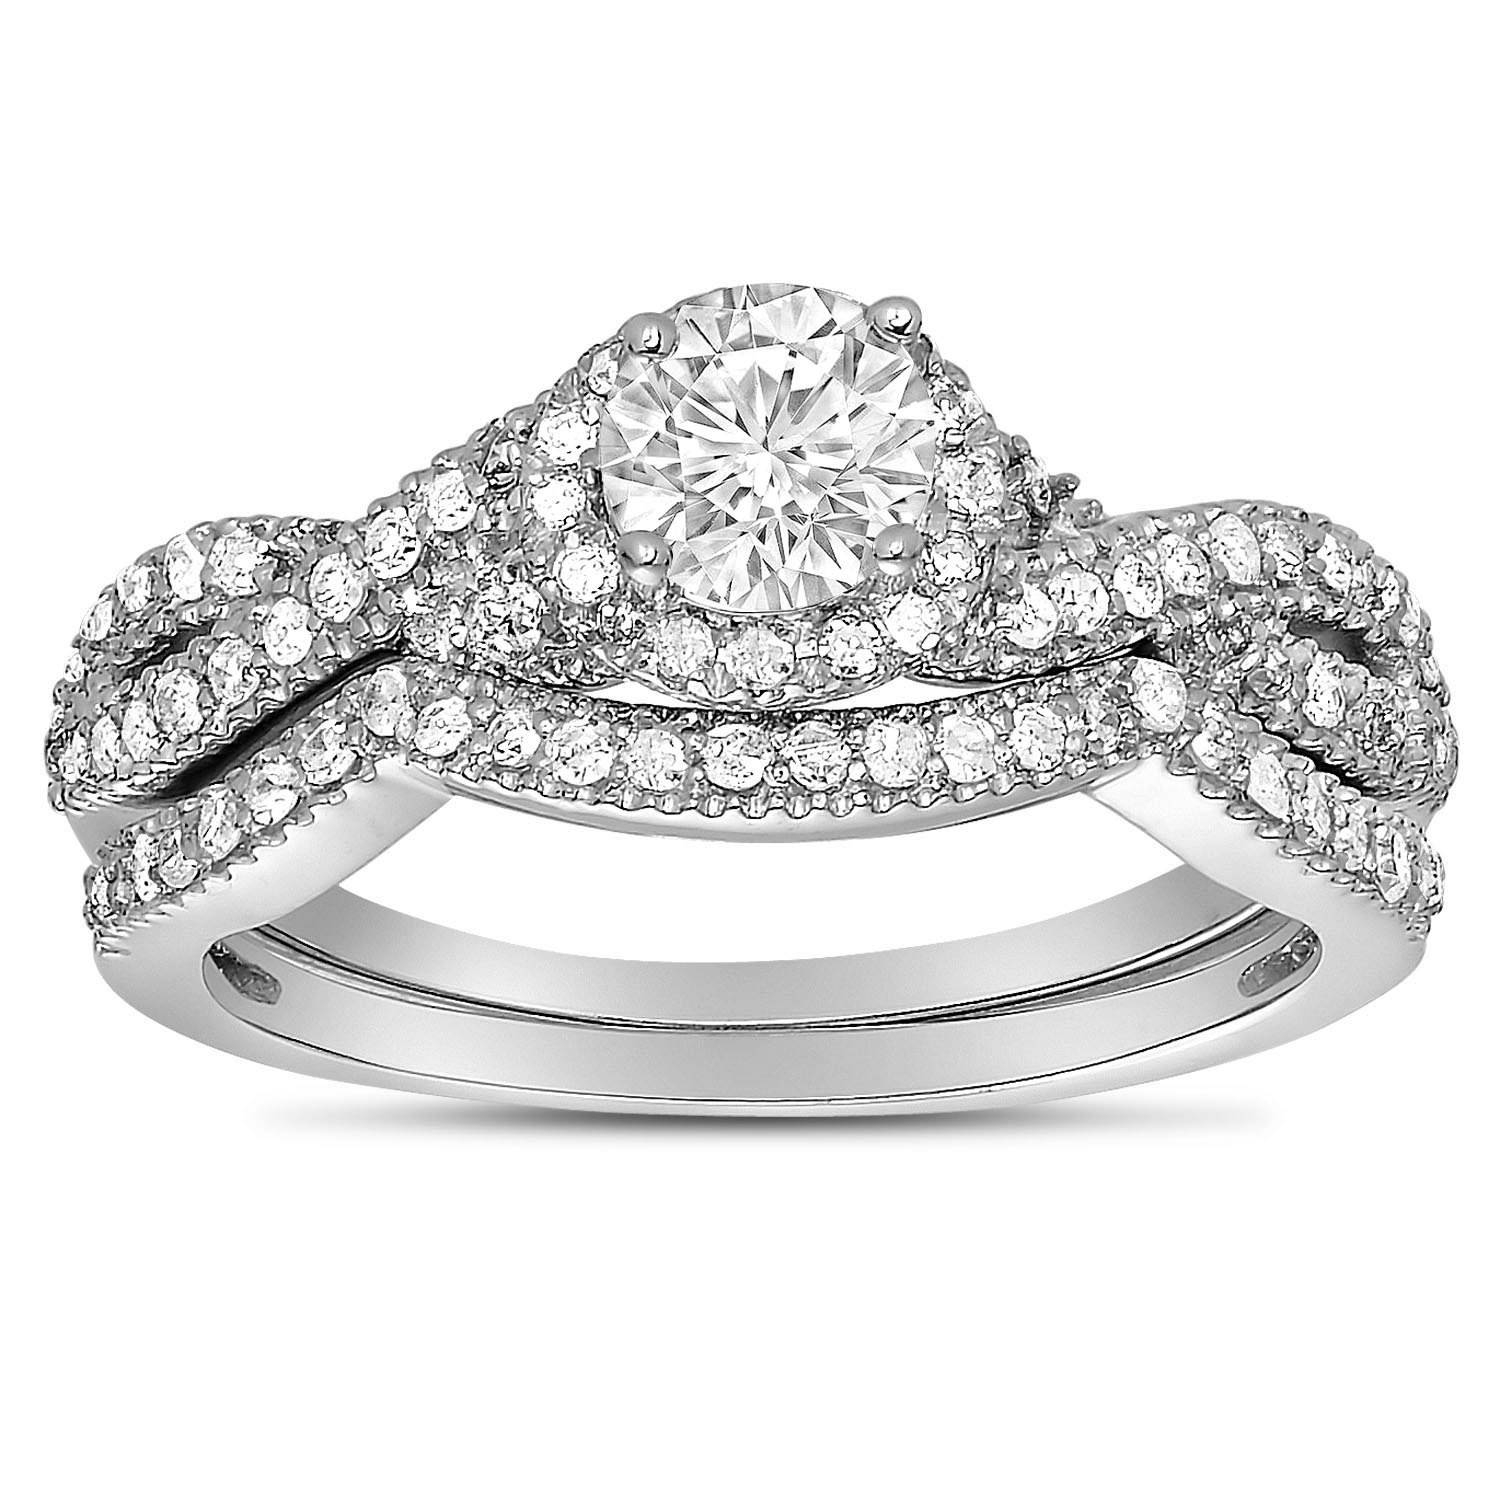 2 Carat Round Diamond Infinity Wedding Ring Set In White Gold For Throughout Diamond Wedding Rings For Her (Gallery 5 of 15)